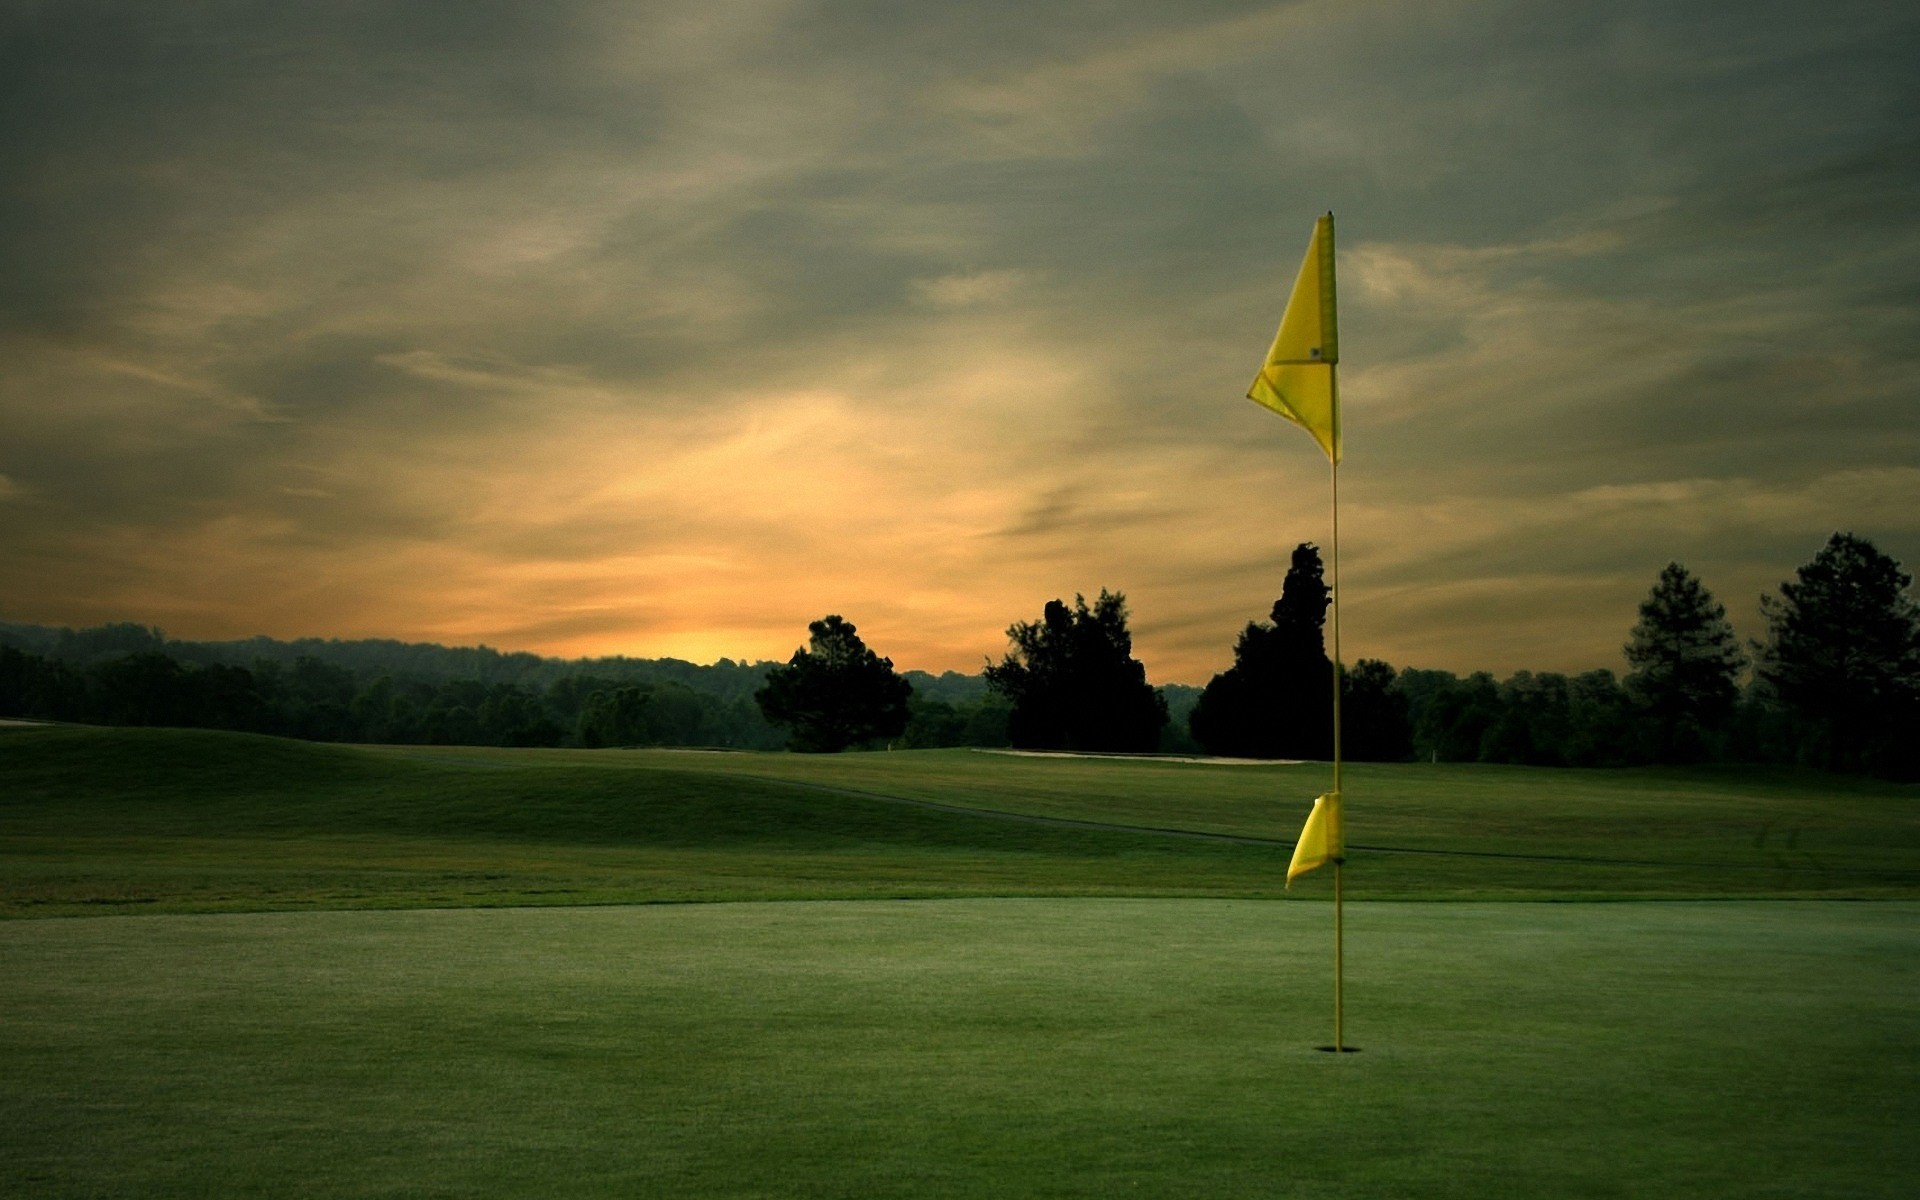 hd golf wallpaper free download amazing images background photos windows  wallpapers high quality artworks colourful ultra